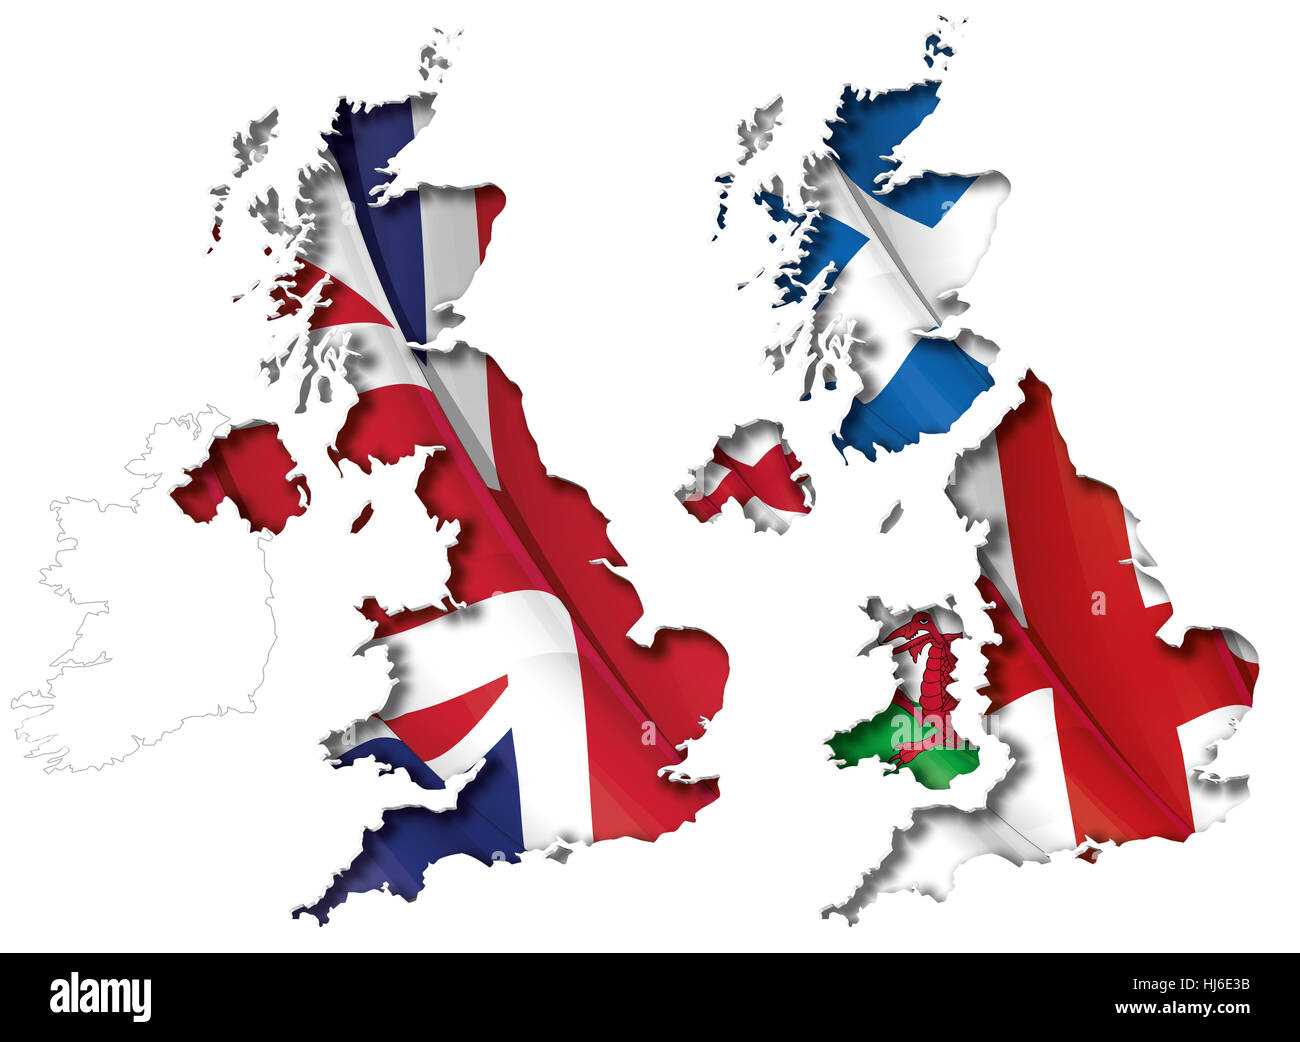 England scotland britain cut out wales map atlas map of the england scotland britain cut out wales map atlas map of the world cut gumiabroncs Images